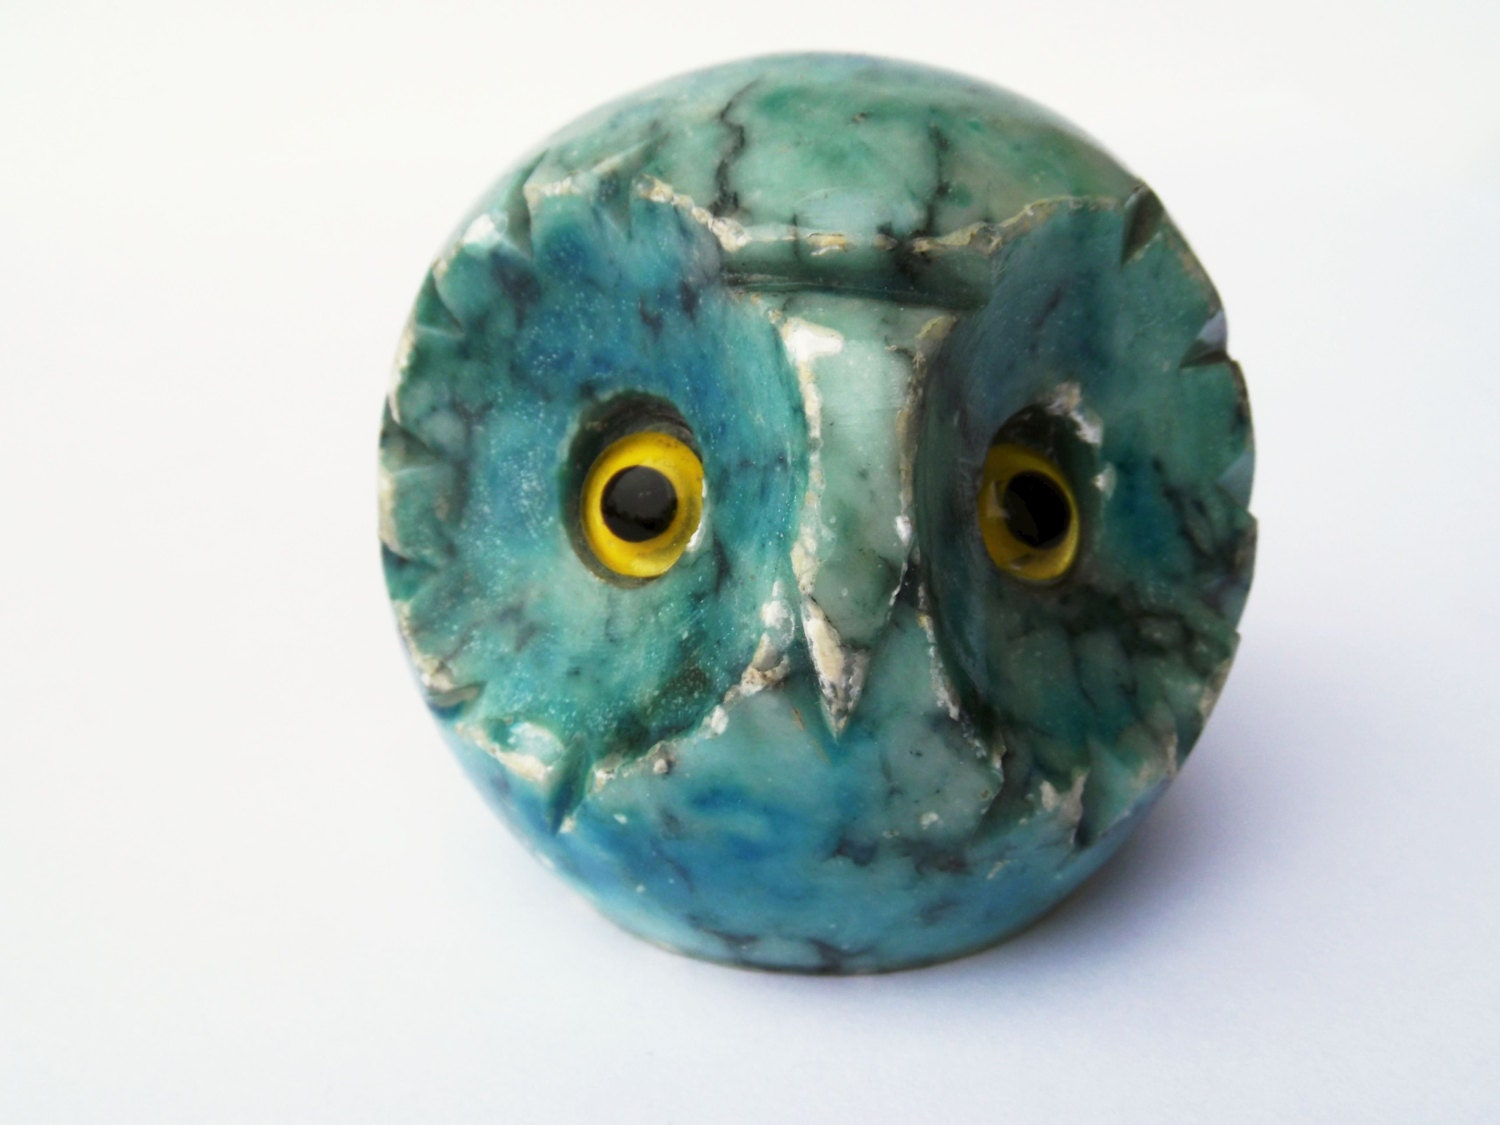 Green Marble Ball : Blue owl paperweight carved marble ball figurine vintage